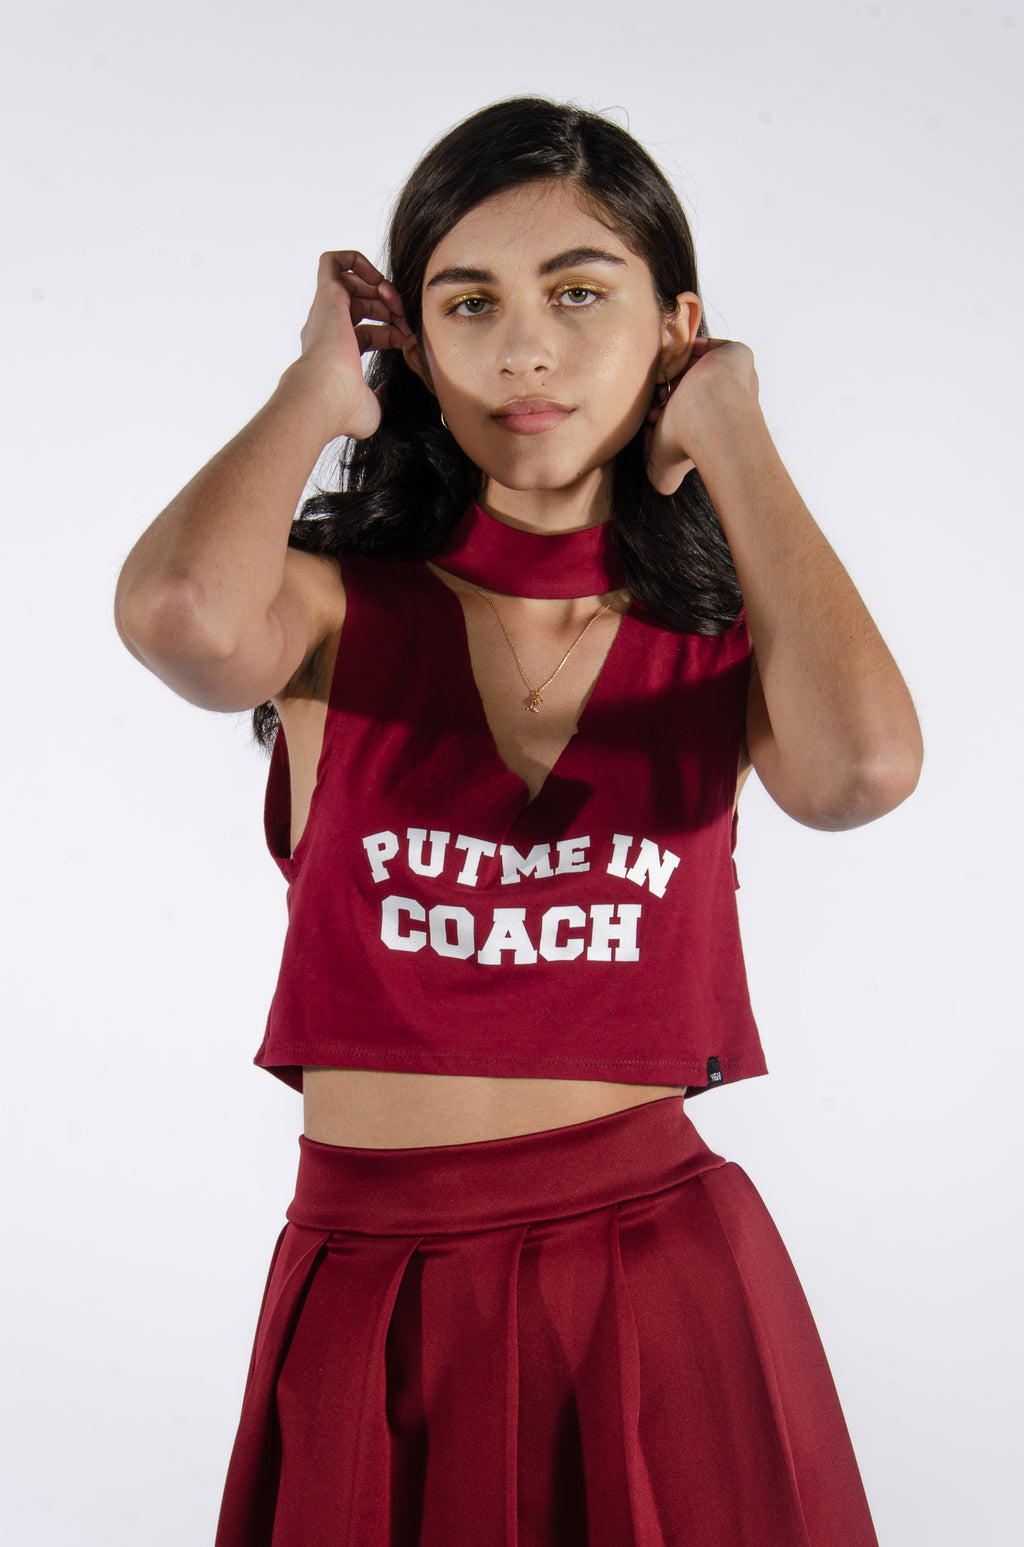 Put me in Coach Burgundy Cutout Top - Hype and Vice